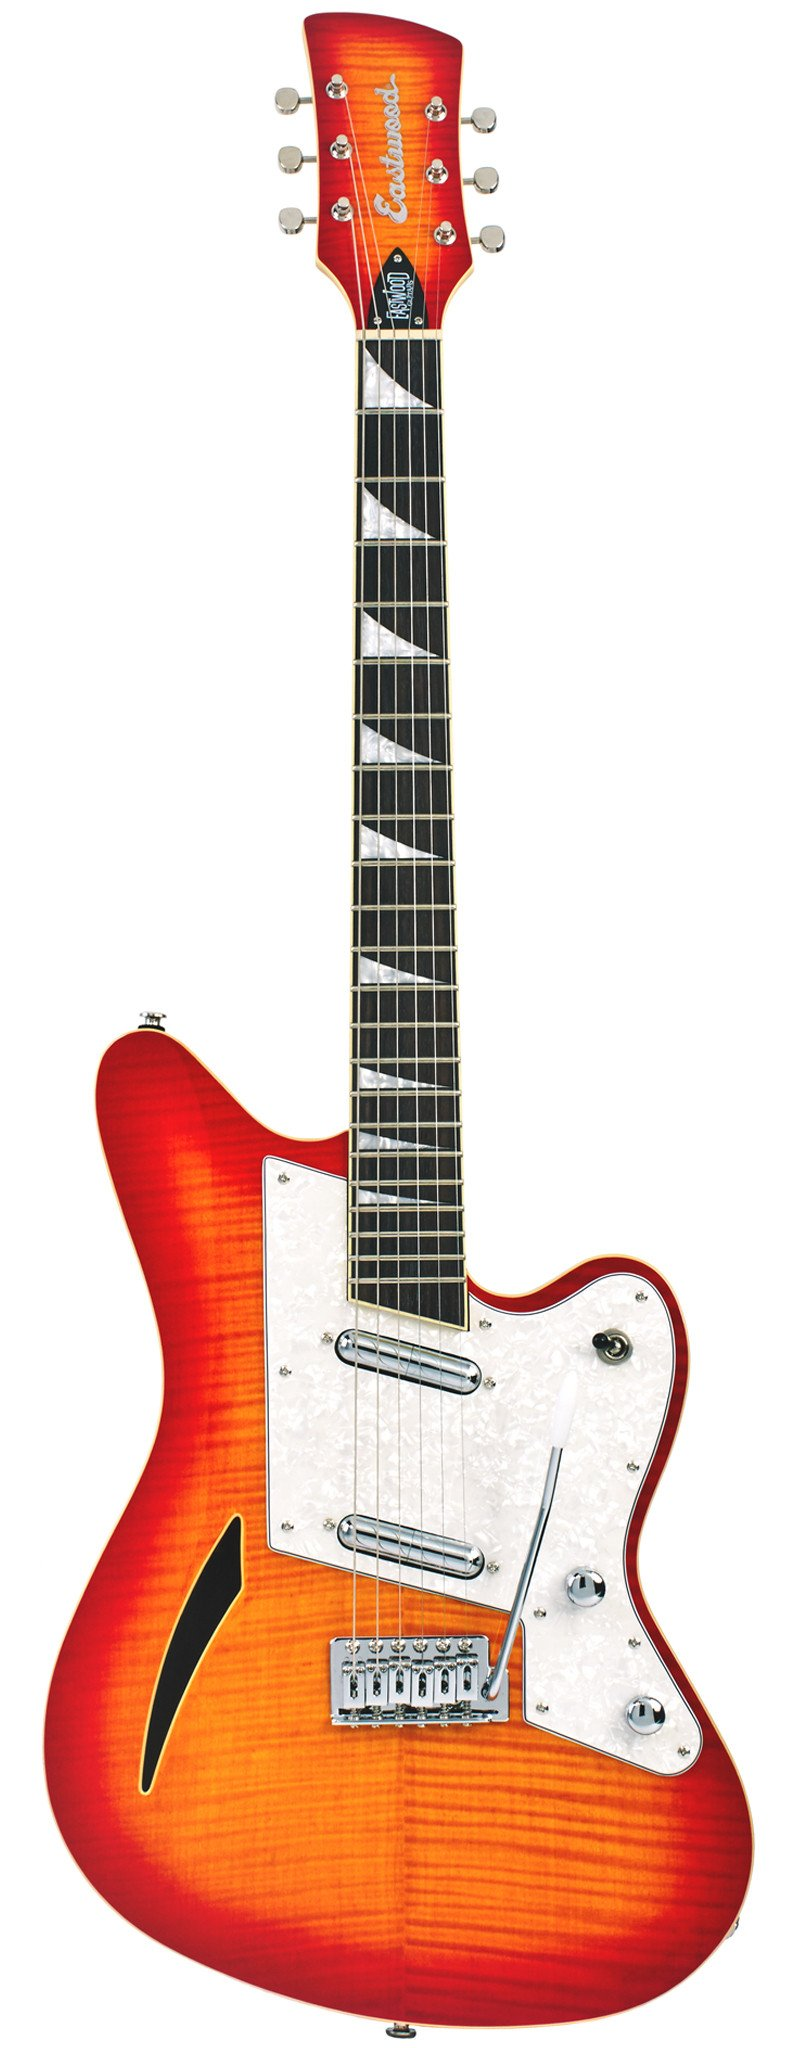 Eastwood Guitars Surfcaster Cherryburst Full Front